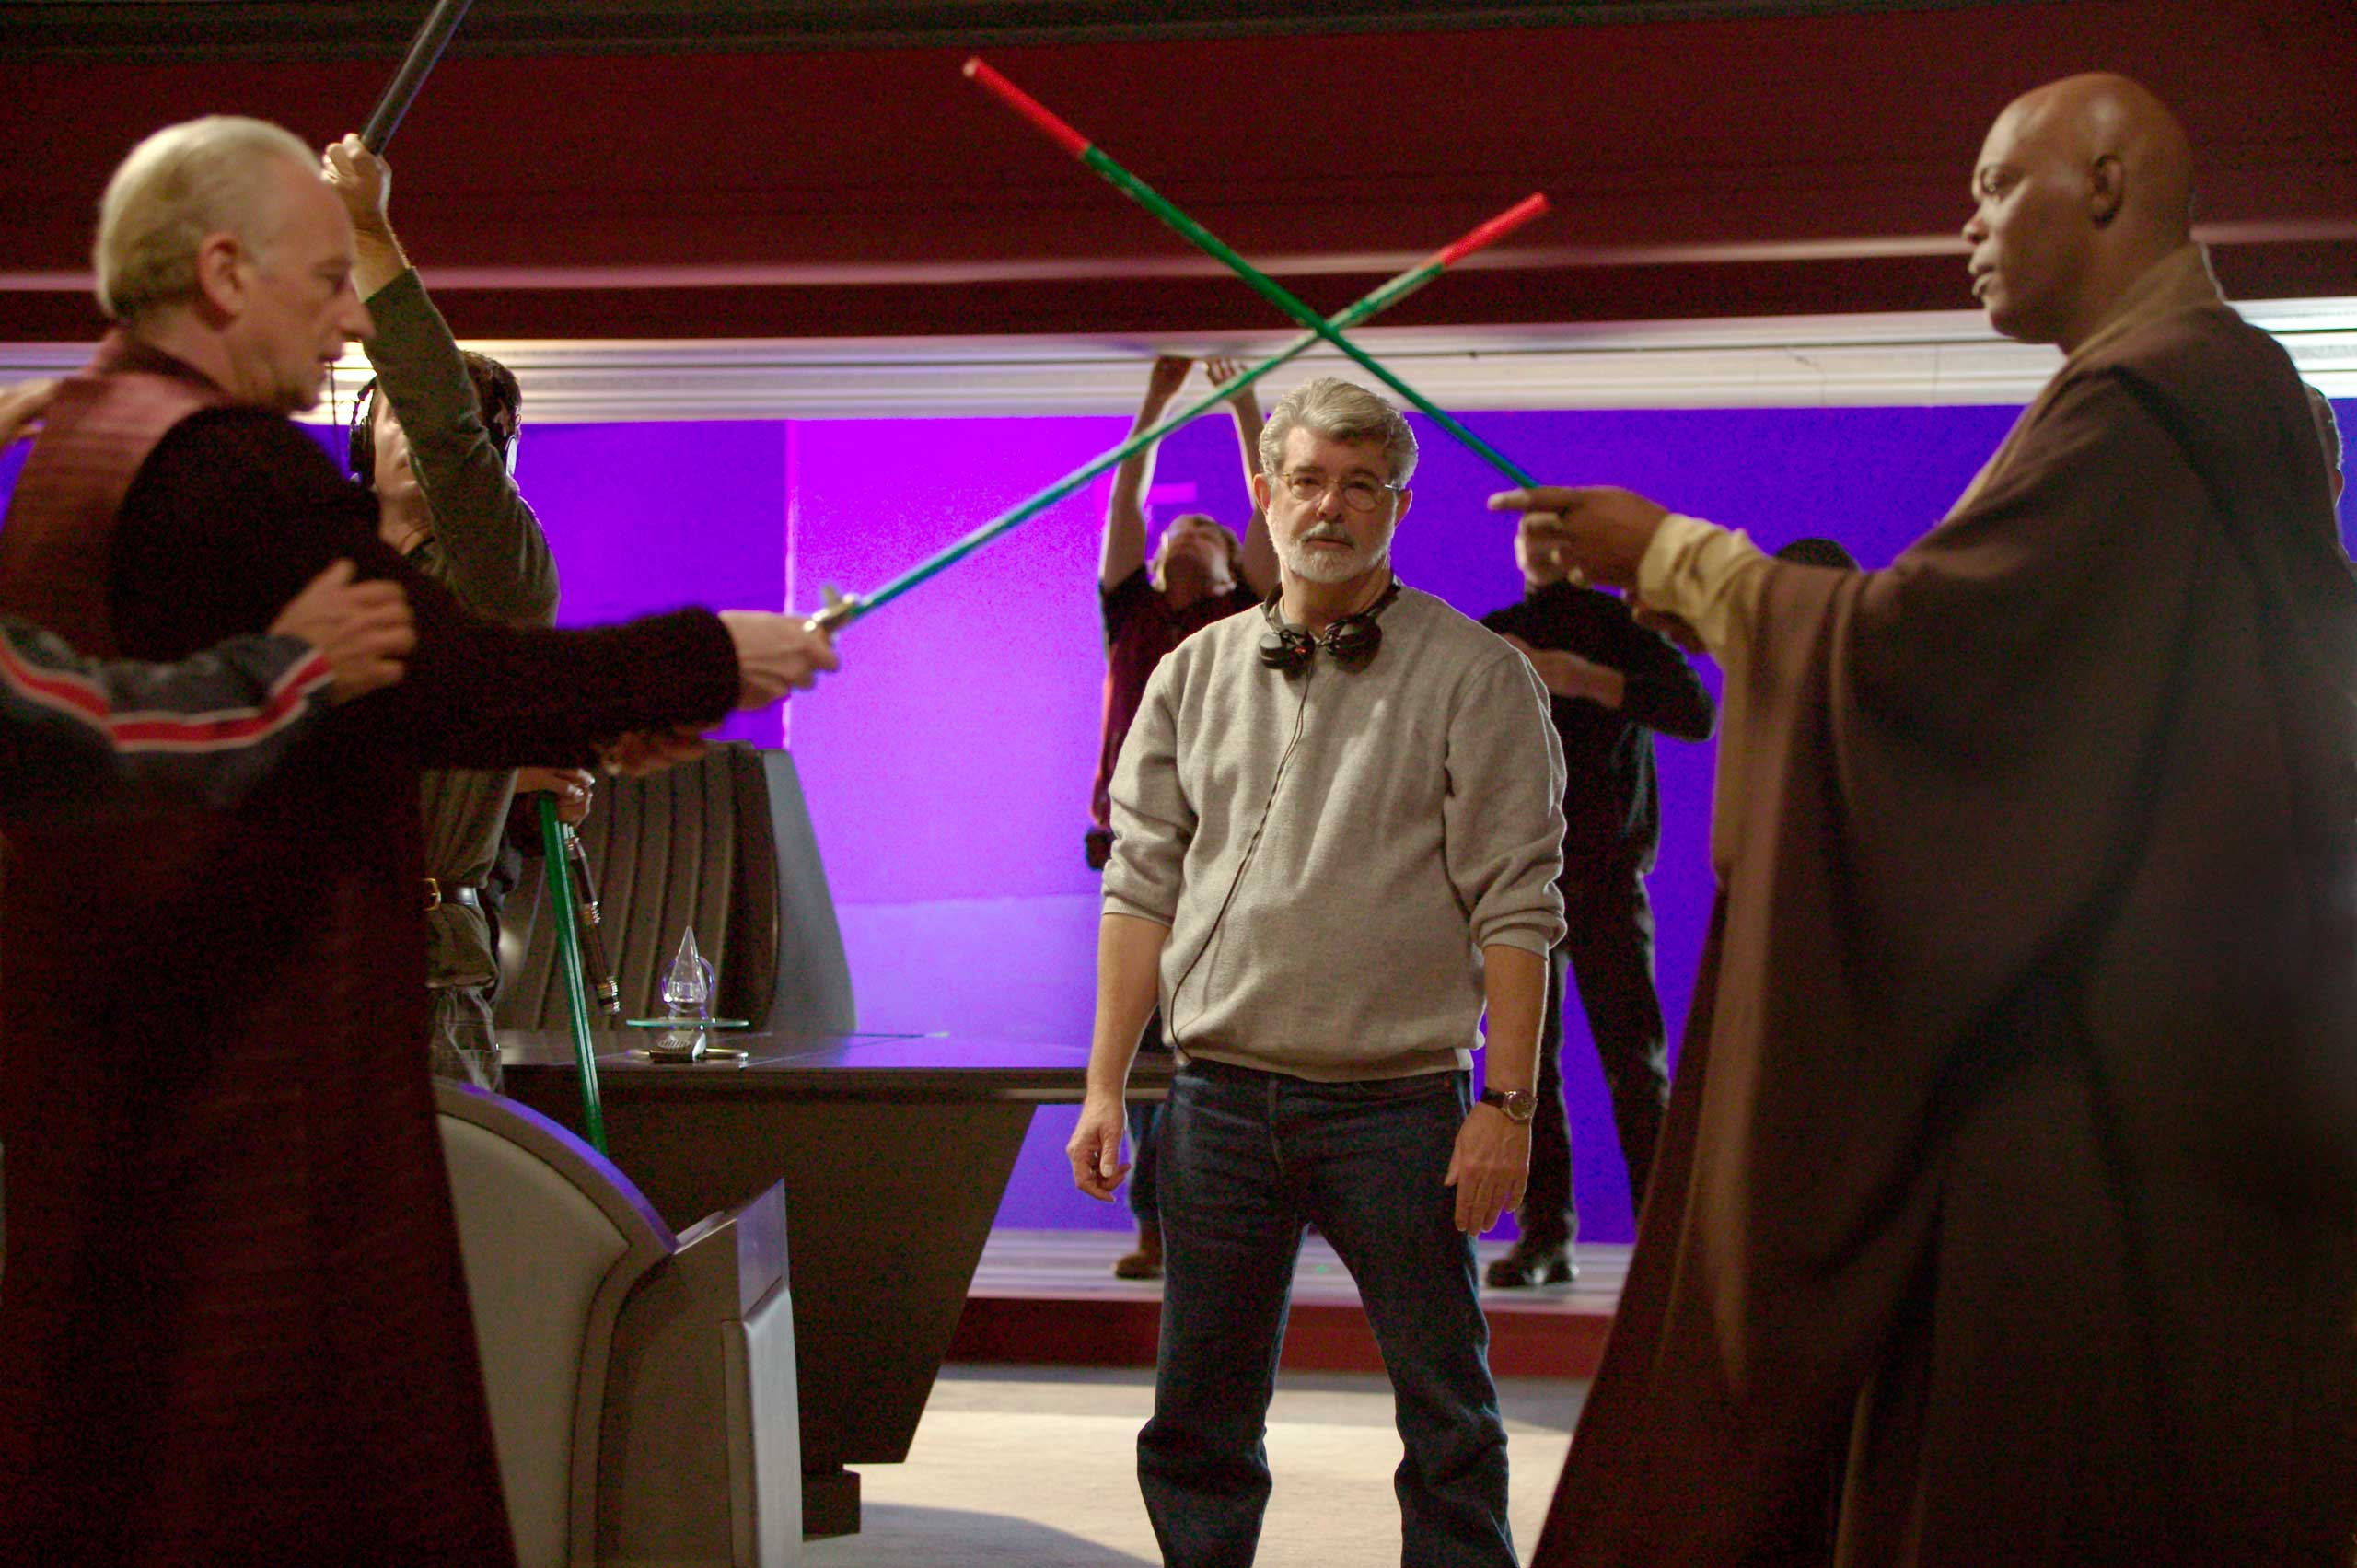 Lucas directs a lightsaber battle between Ian McDiarmid (Chancellor Palpatine/Darth Sidious) and Samuel L. Jackson (Mace Windu) on the set of <i>Star Wars: Episode III - Revenge of the Sith</i>.